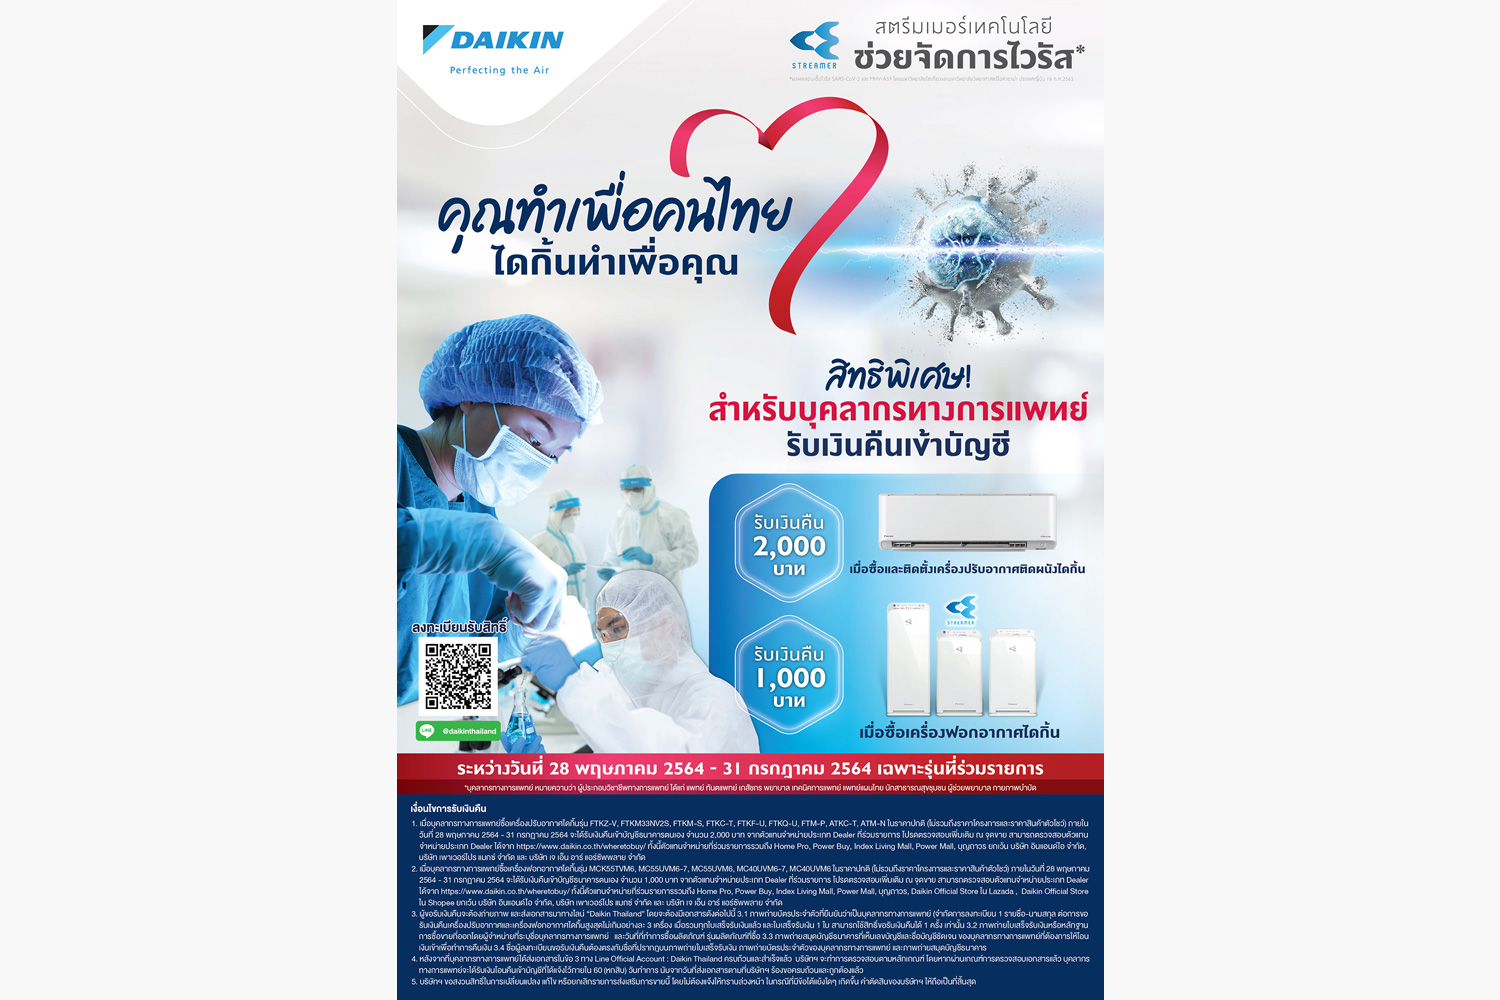 """Daikin sends goodwill and support to Thai medical personnel with """"You Take Care of Thai Citizens, We Take Care of You"""""""